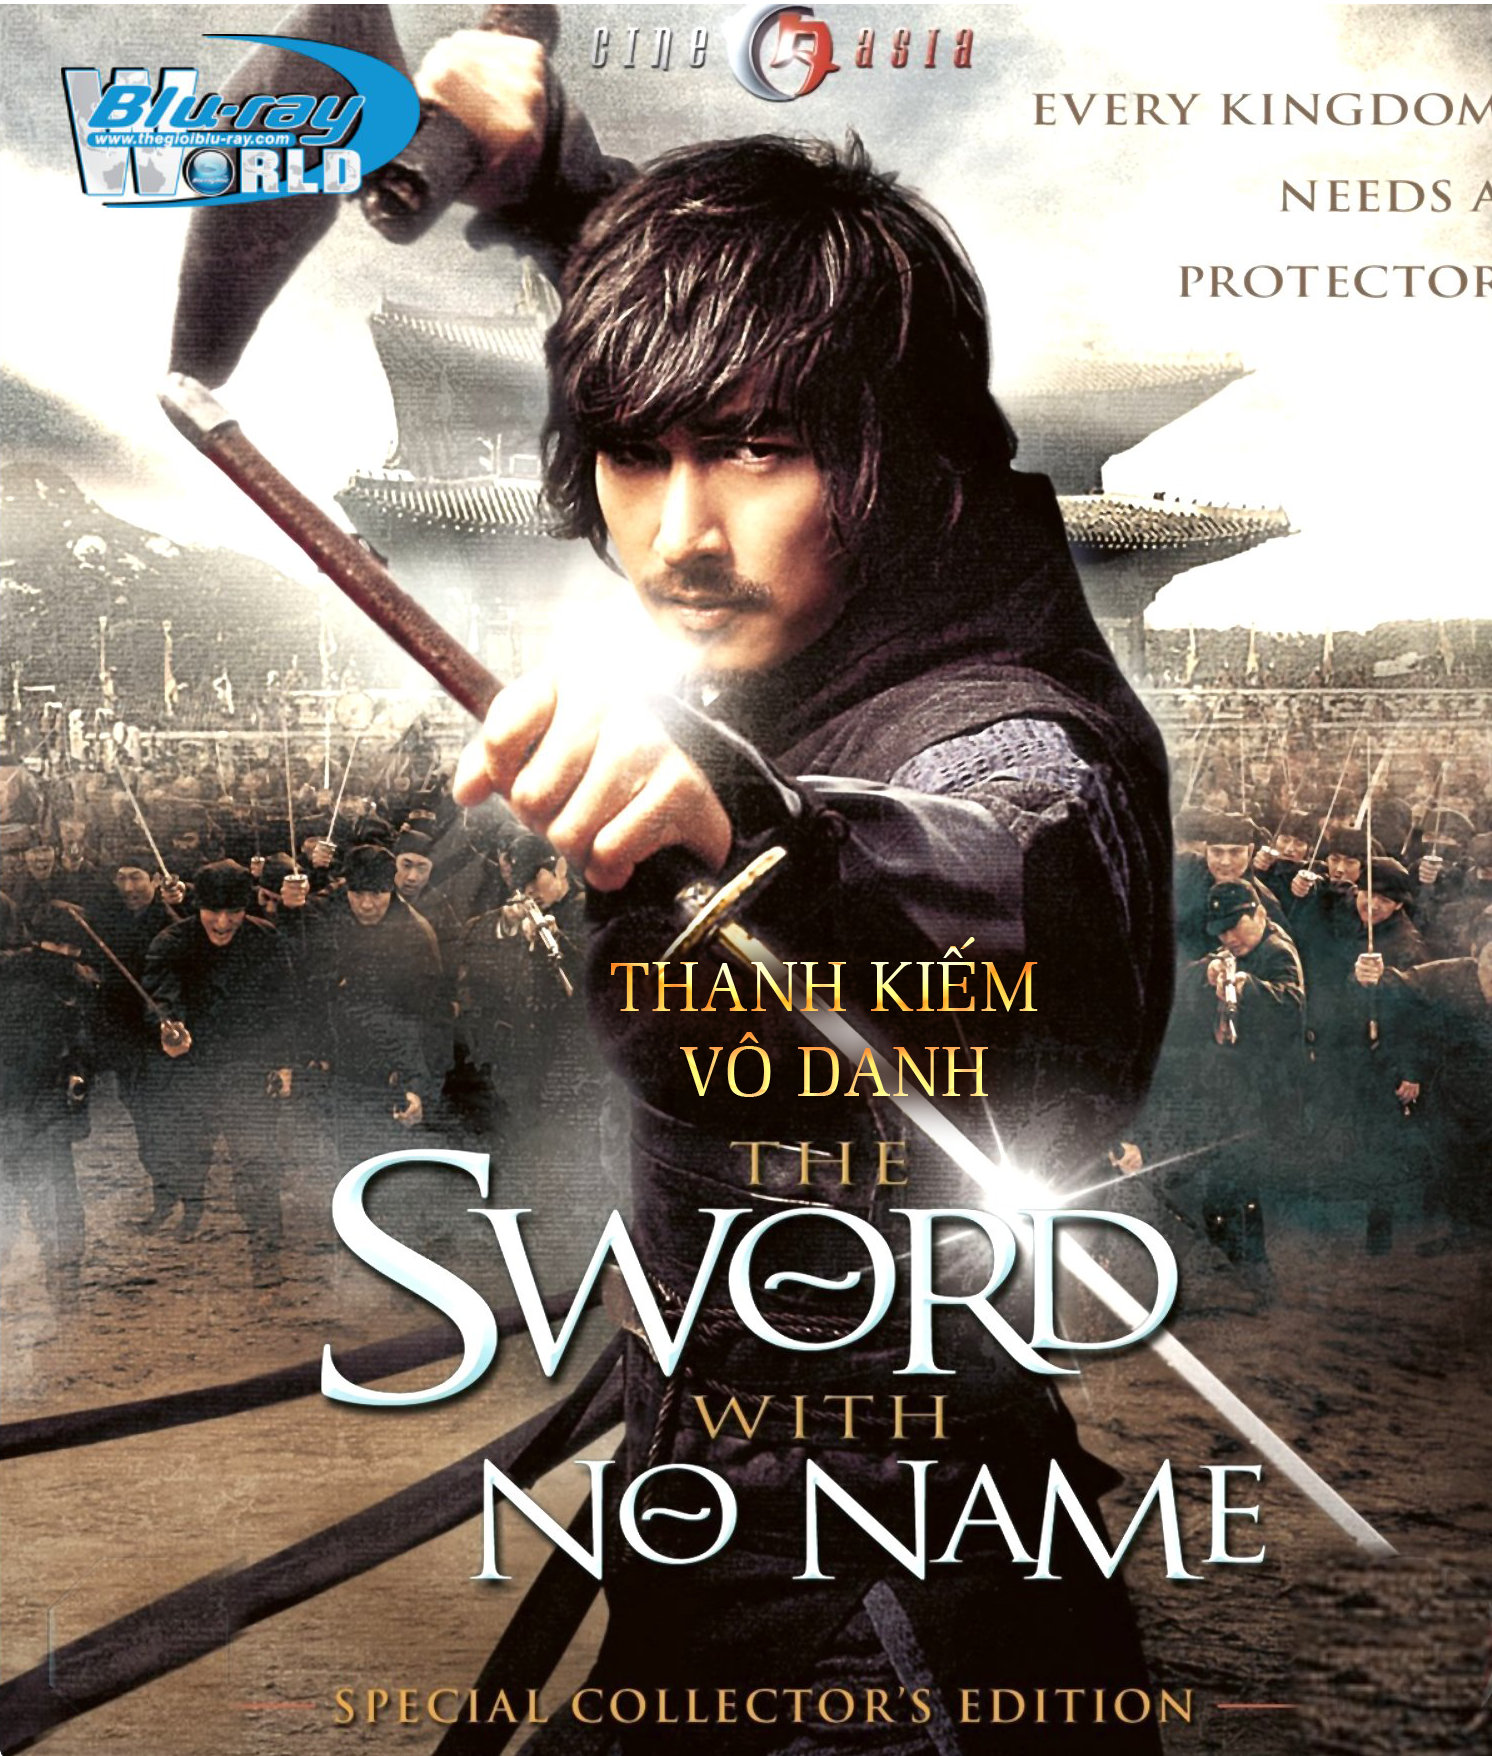 B1678. The Sword With No Name - THANH KIẾM VÔ DANH 2D 25G (DTS-HD MA 5.1)